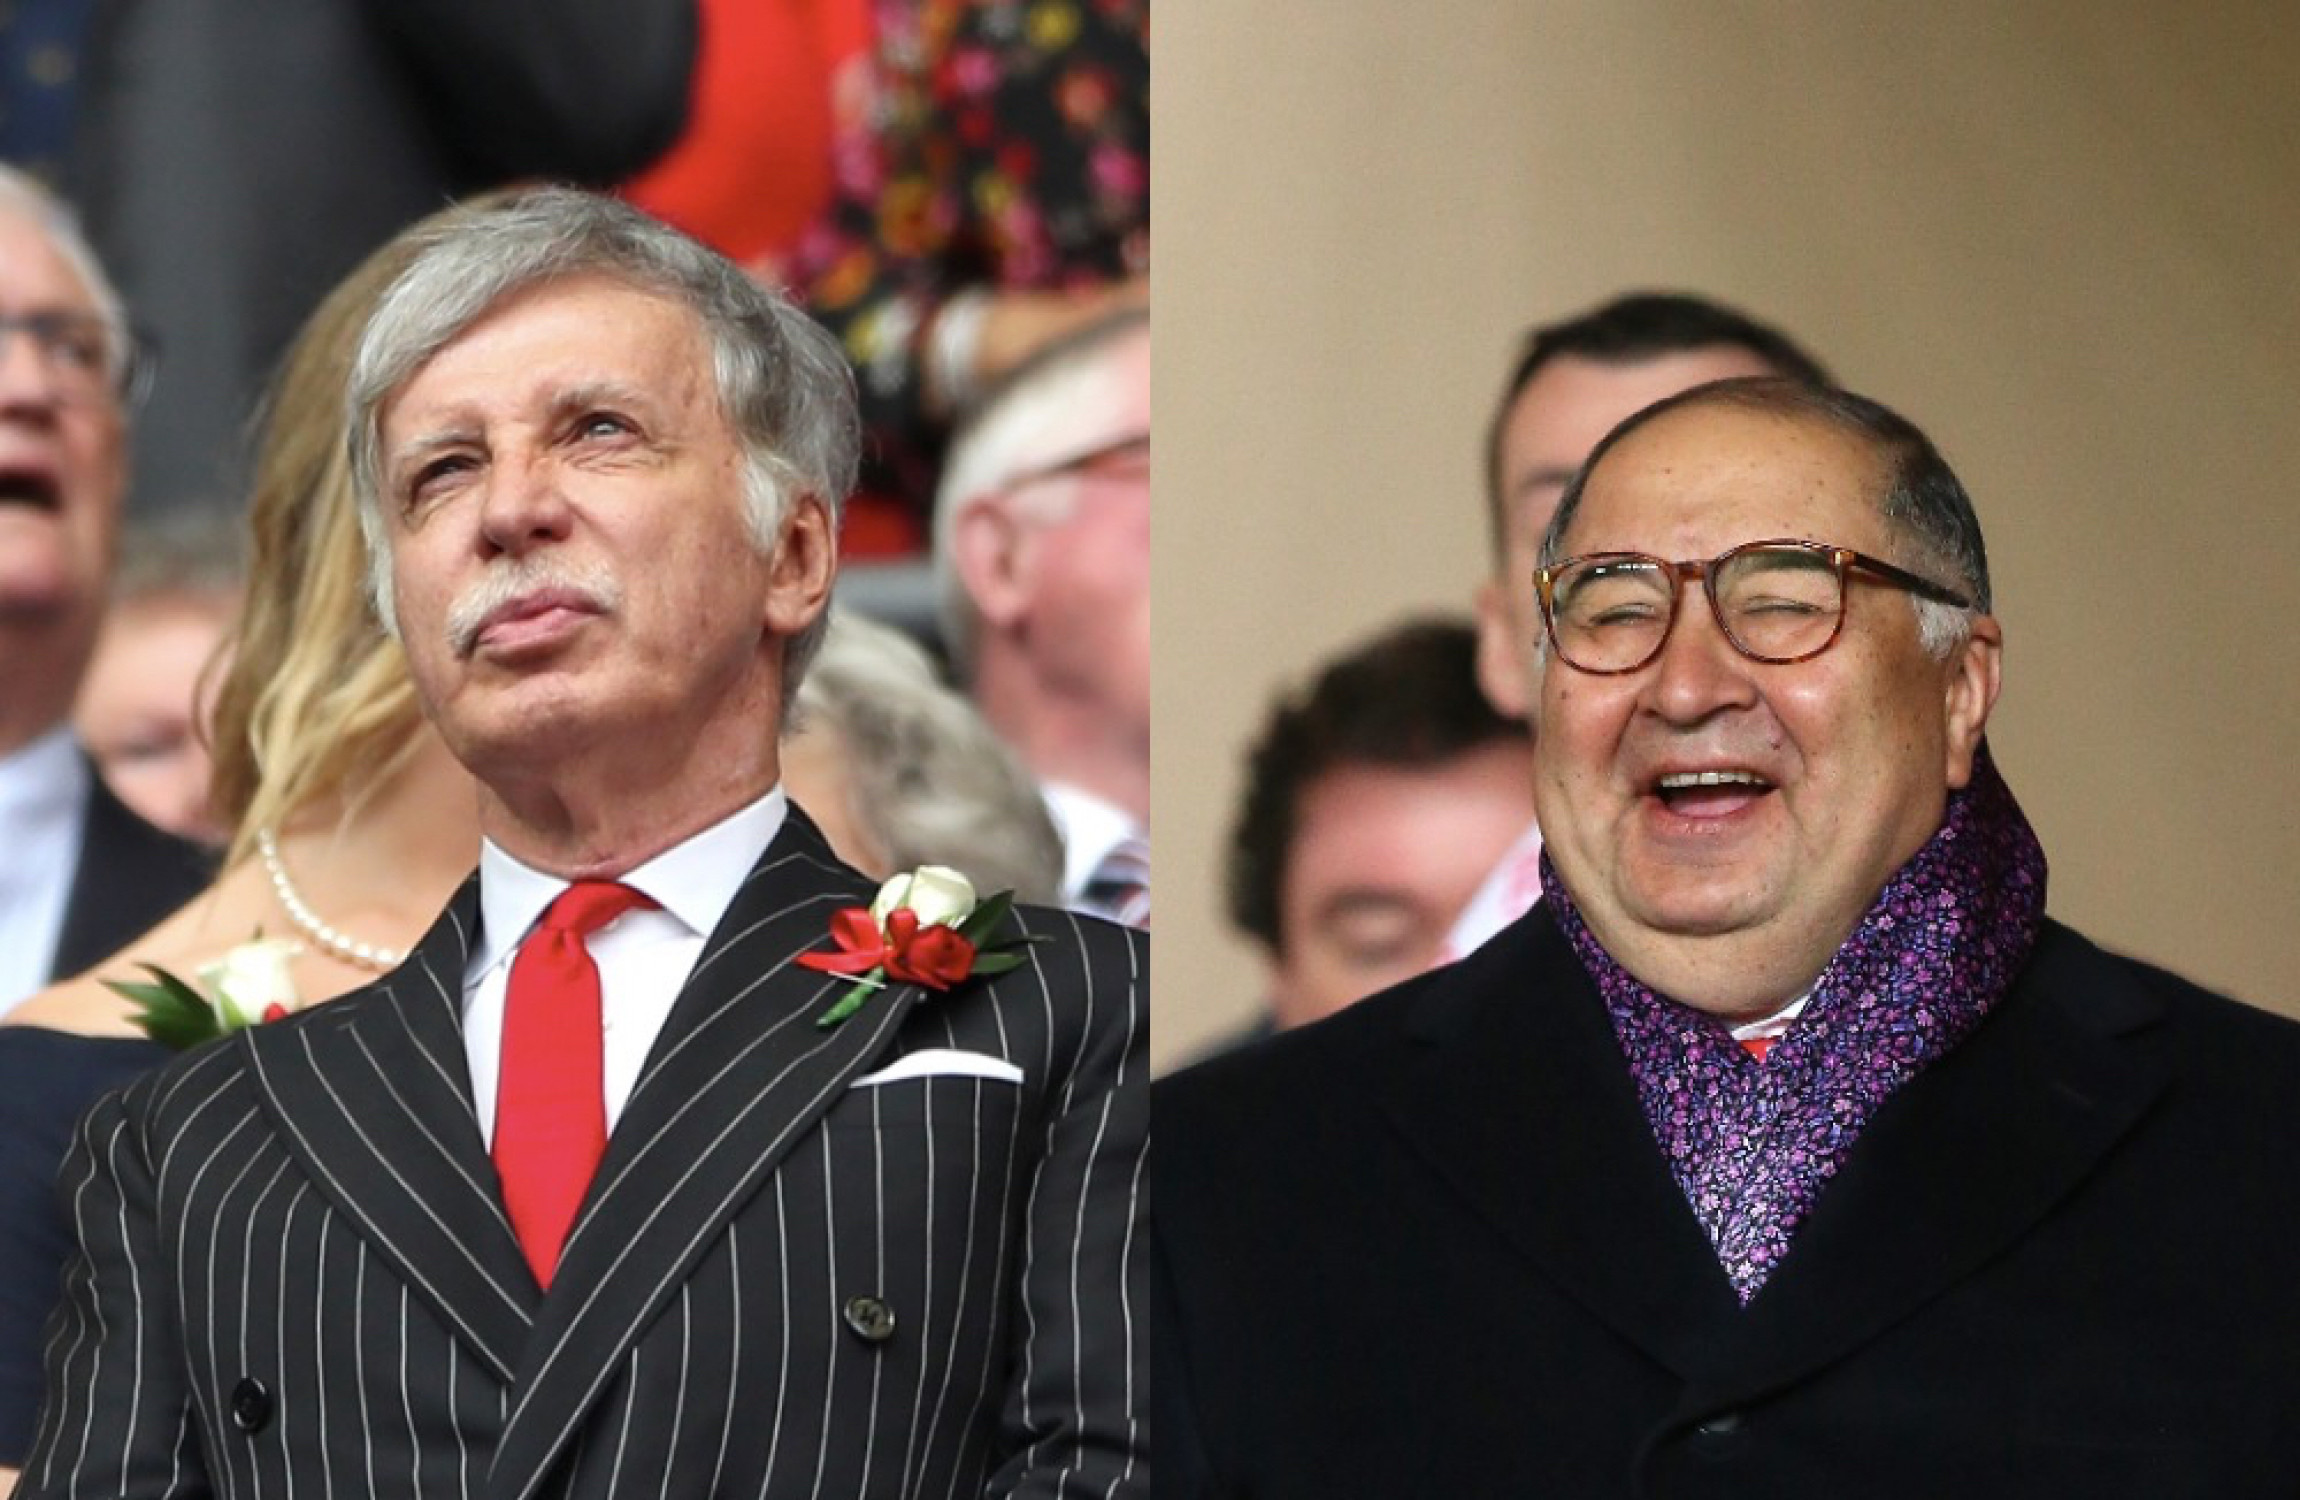 Usmanov confirms he's willing to sell up at Arsenal - with details